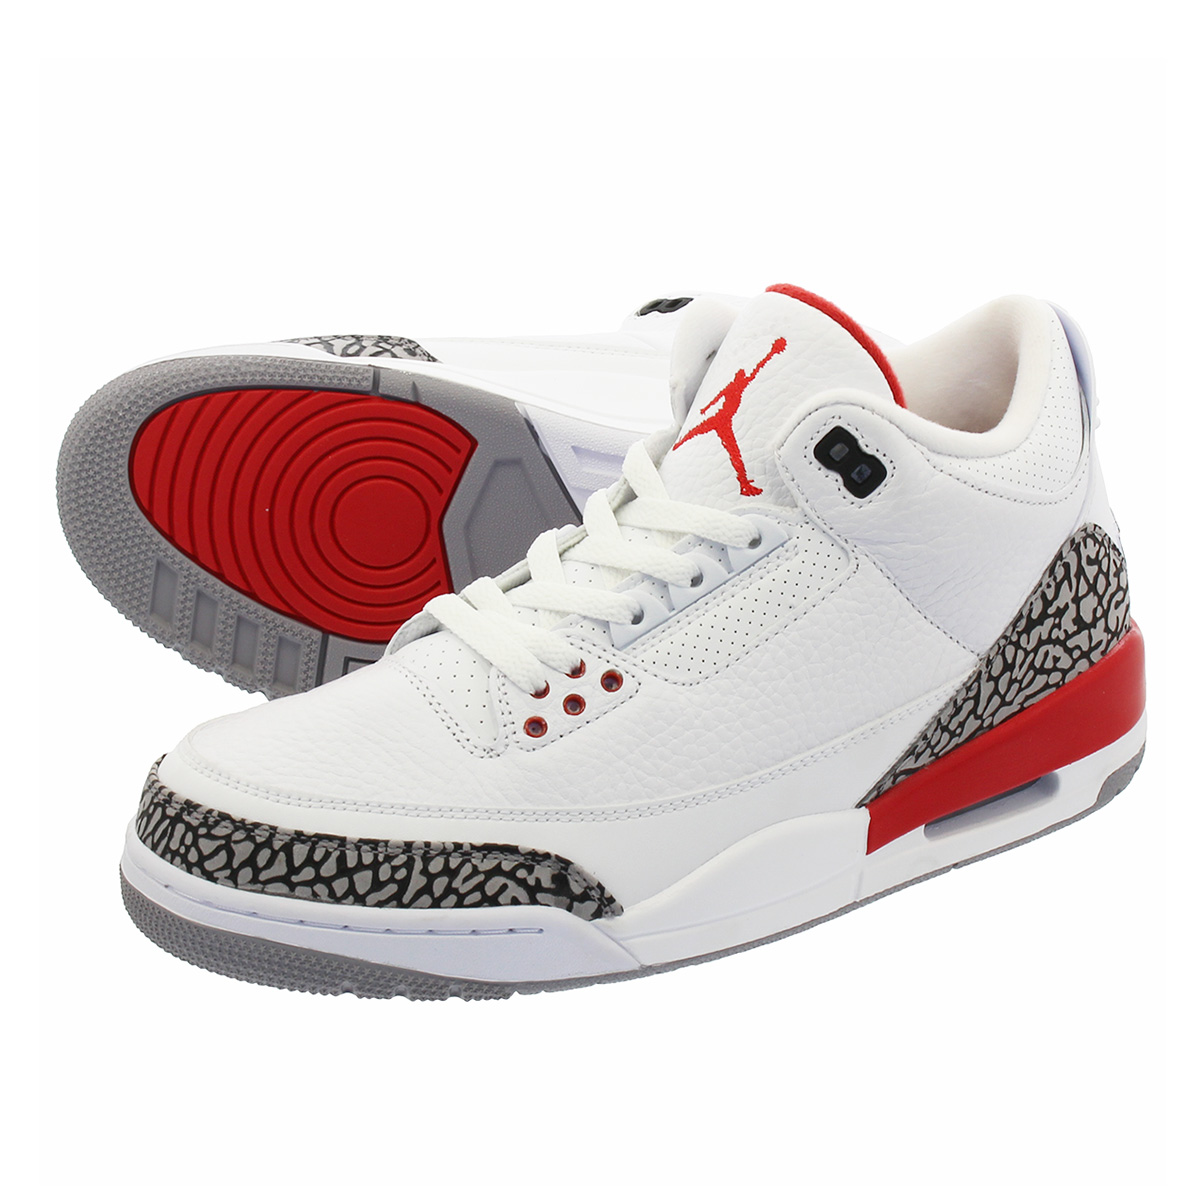 f6258ca3bcd LOWTEX PLUS: NIKE AIR JORDAN 3 RETRO Nike Air Jordan 3 nostalgic  WHITE/CEMENT GREY/FIRE RED 136,064-116 | Rakuten Global Market